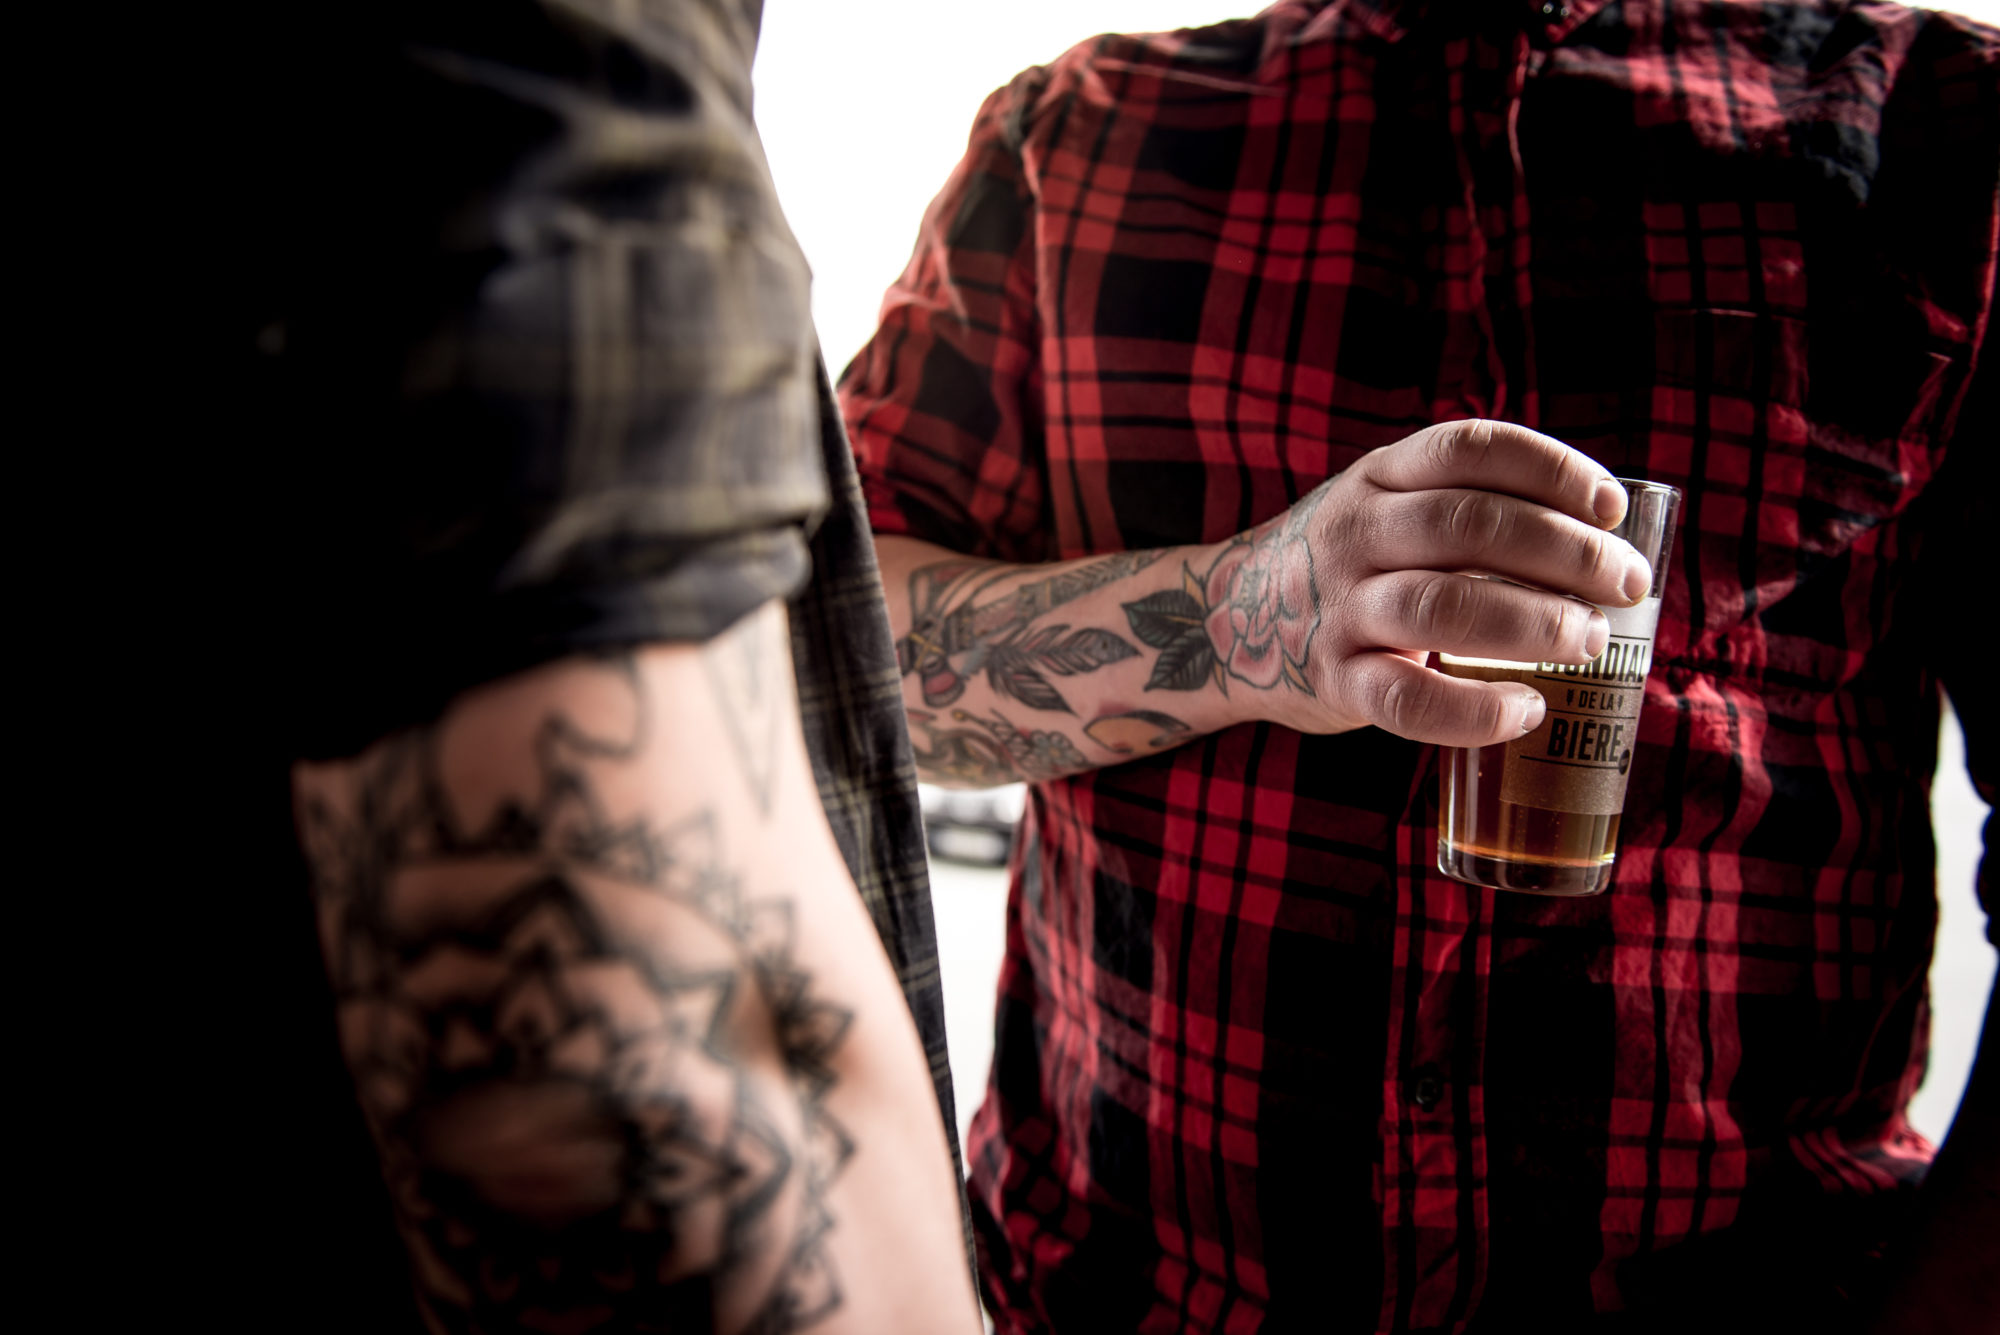 The Paris Beer Festival takes place in May, and allows you to taste lots of different craft beers like this tattooed man holding a glass of beer.